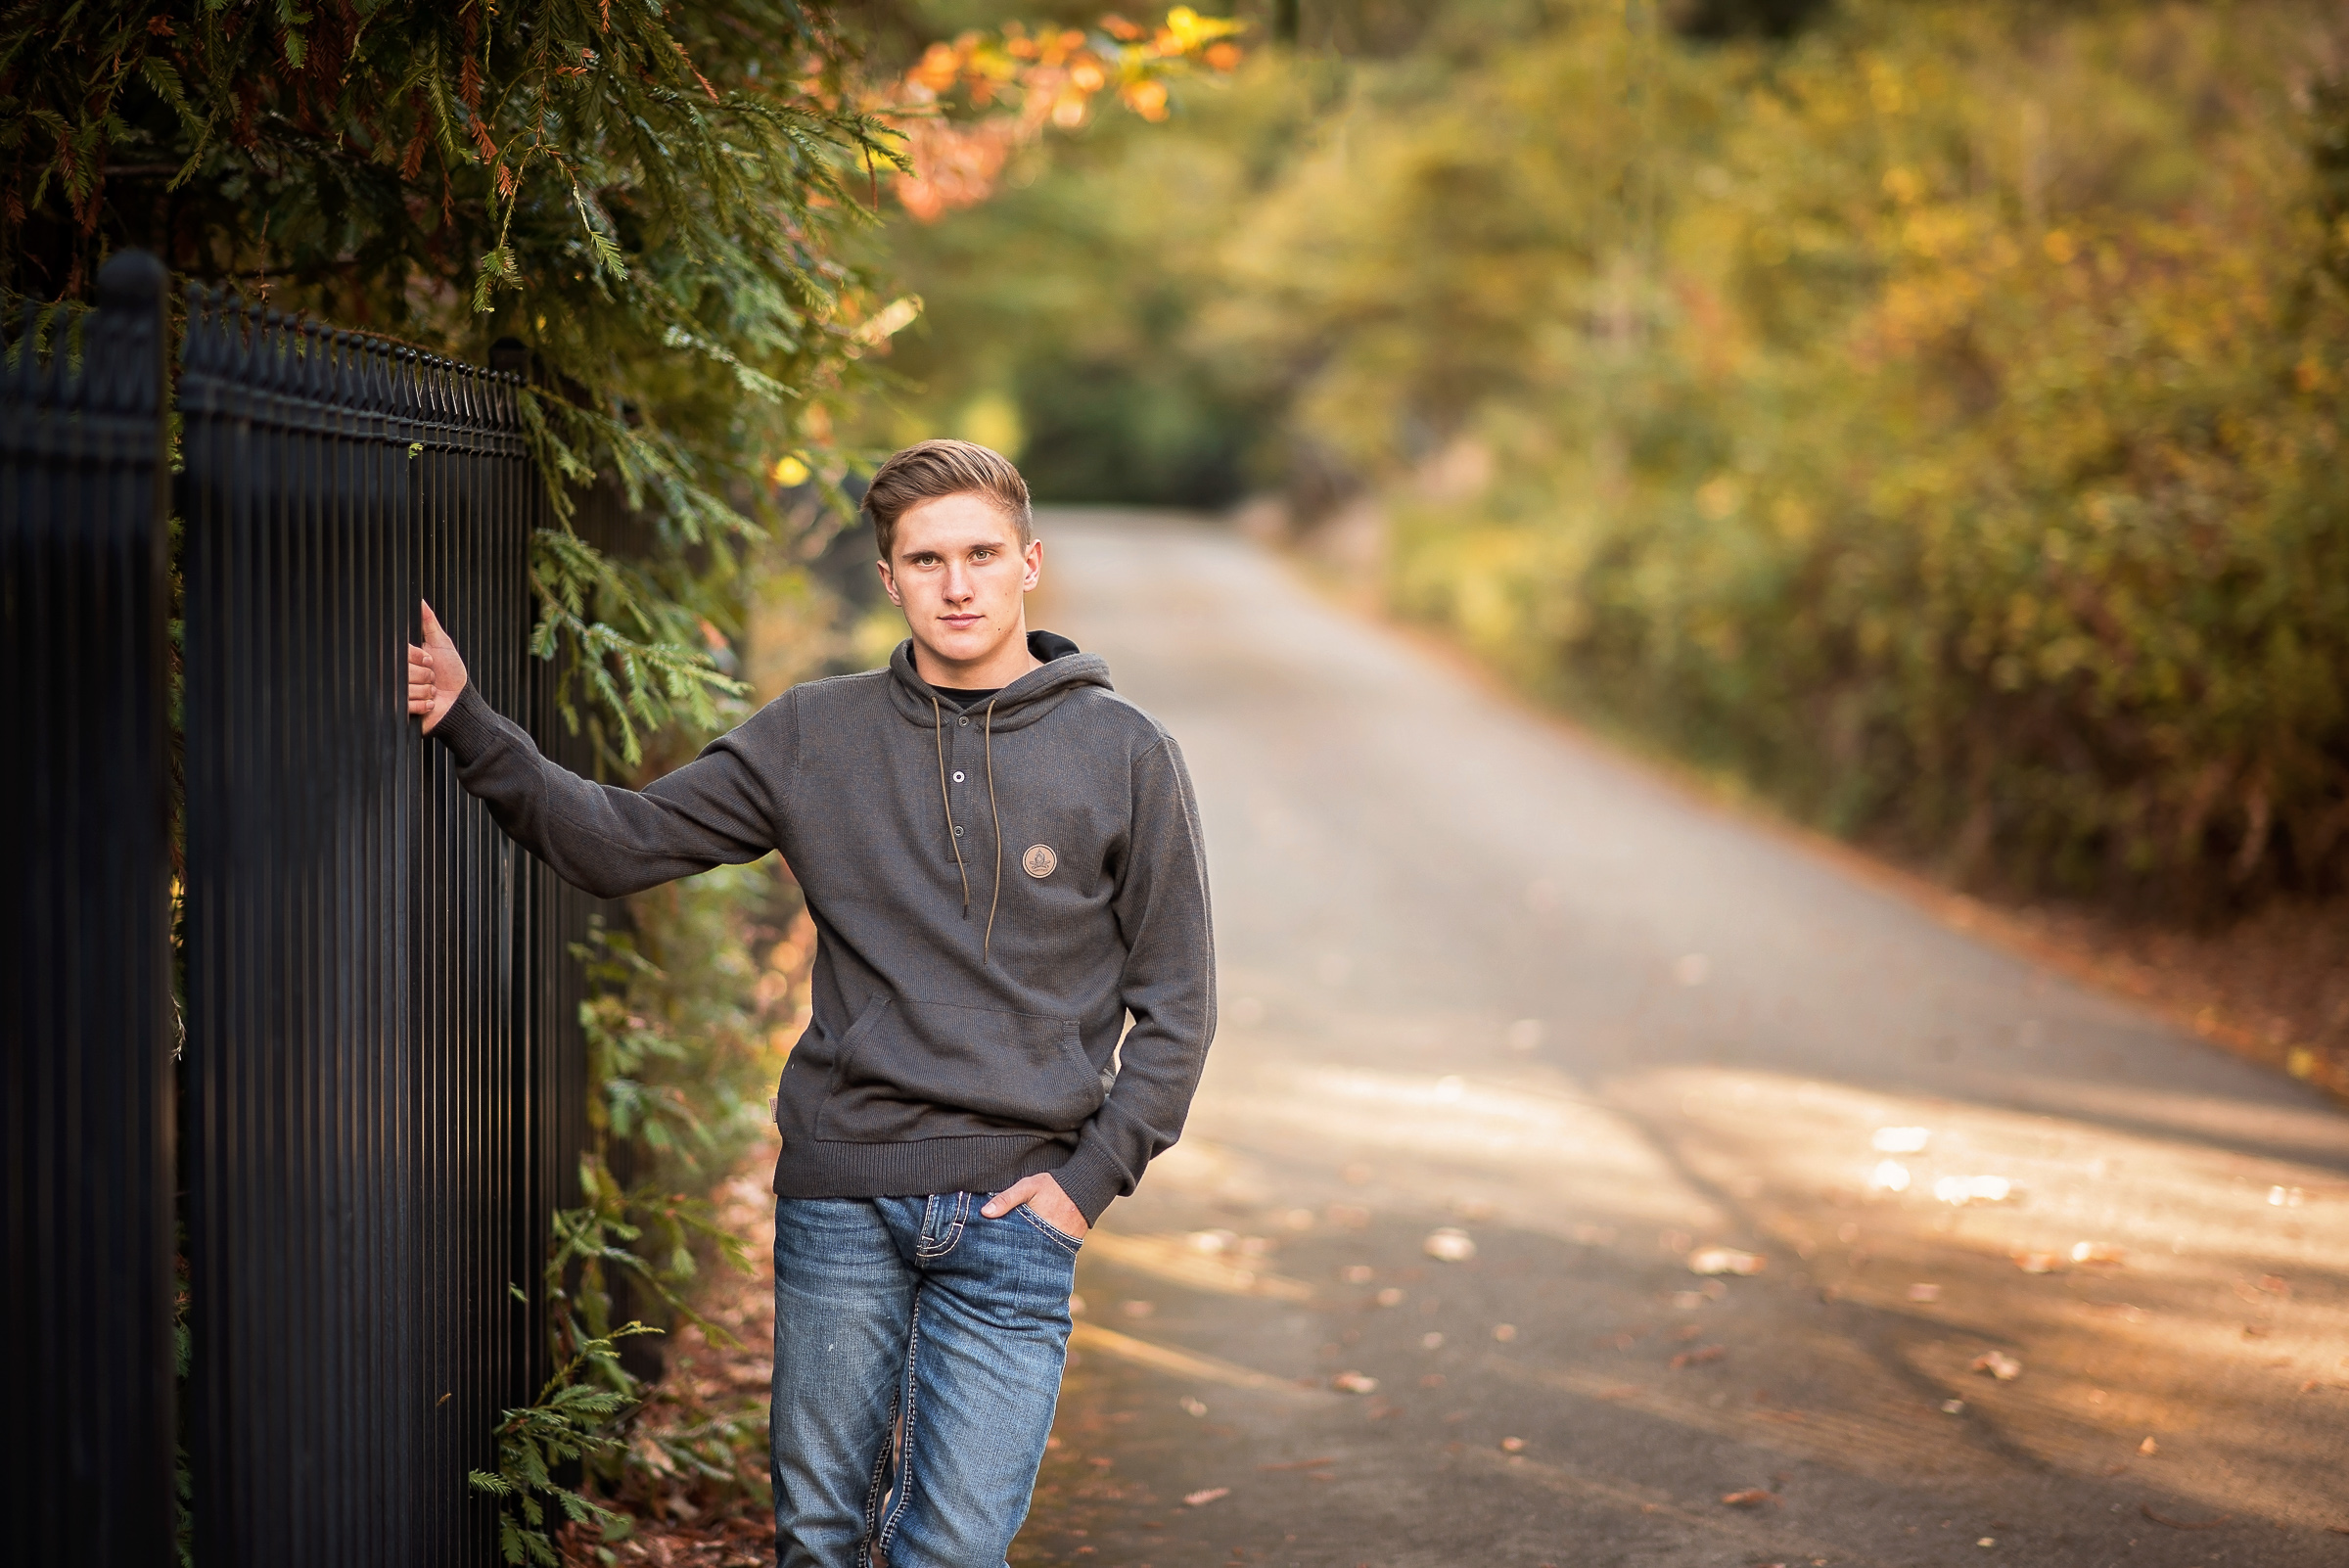 Cody's-Benbow Inn-Humboldt County-Senior Session-Parky's Pics_-18.JPG